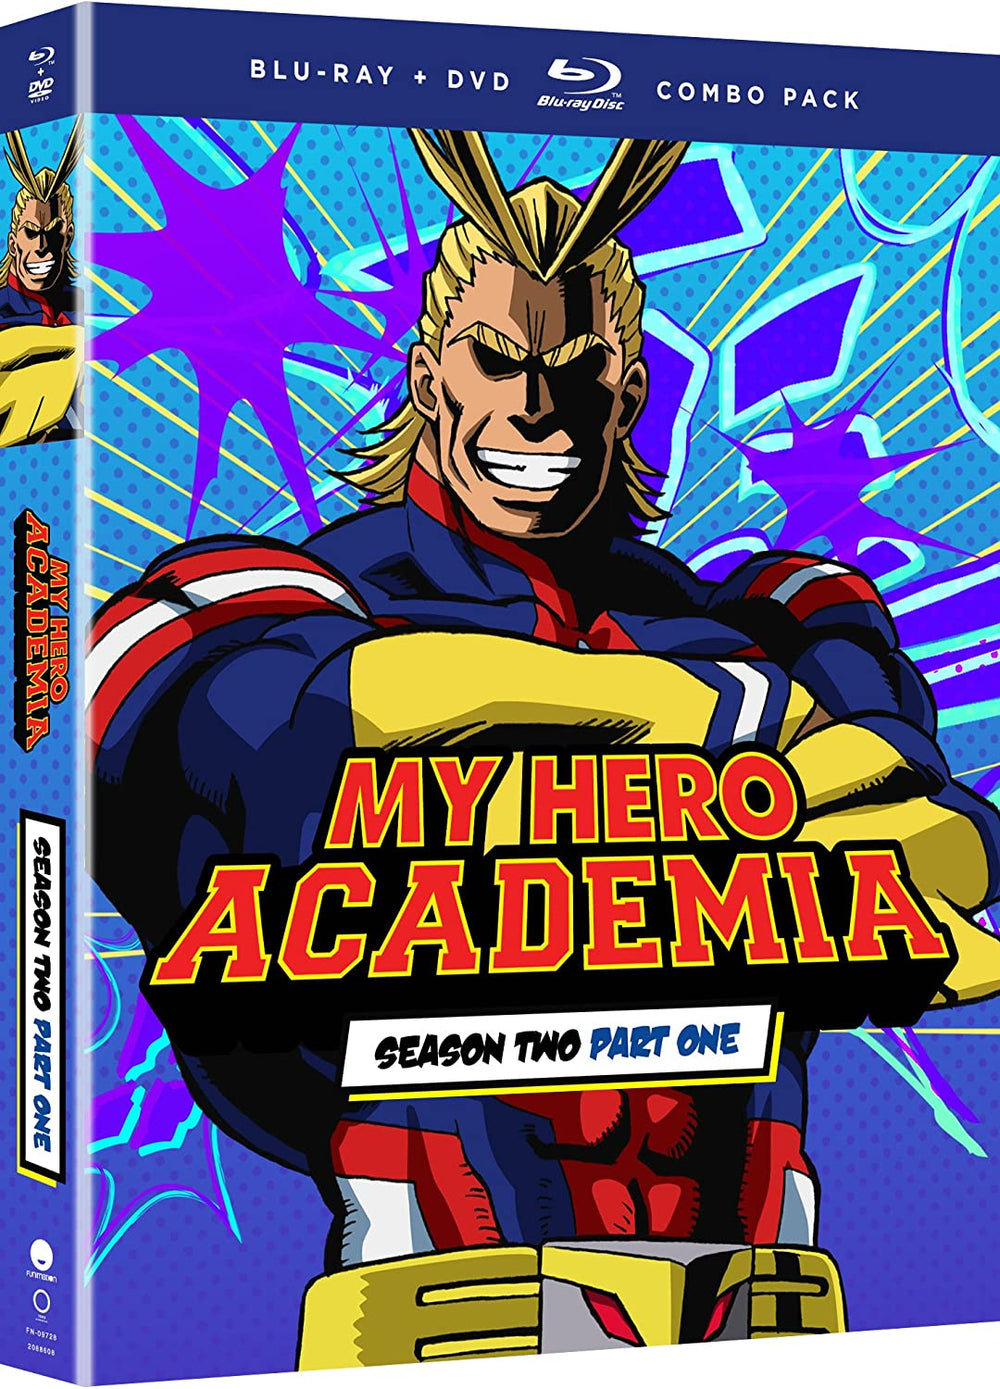 My Hero Academia Season Two Part One Blu-ray Used